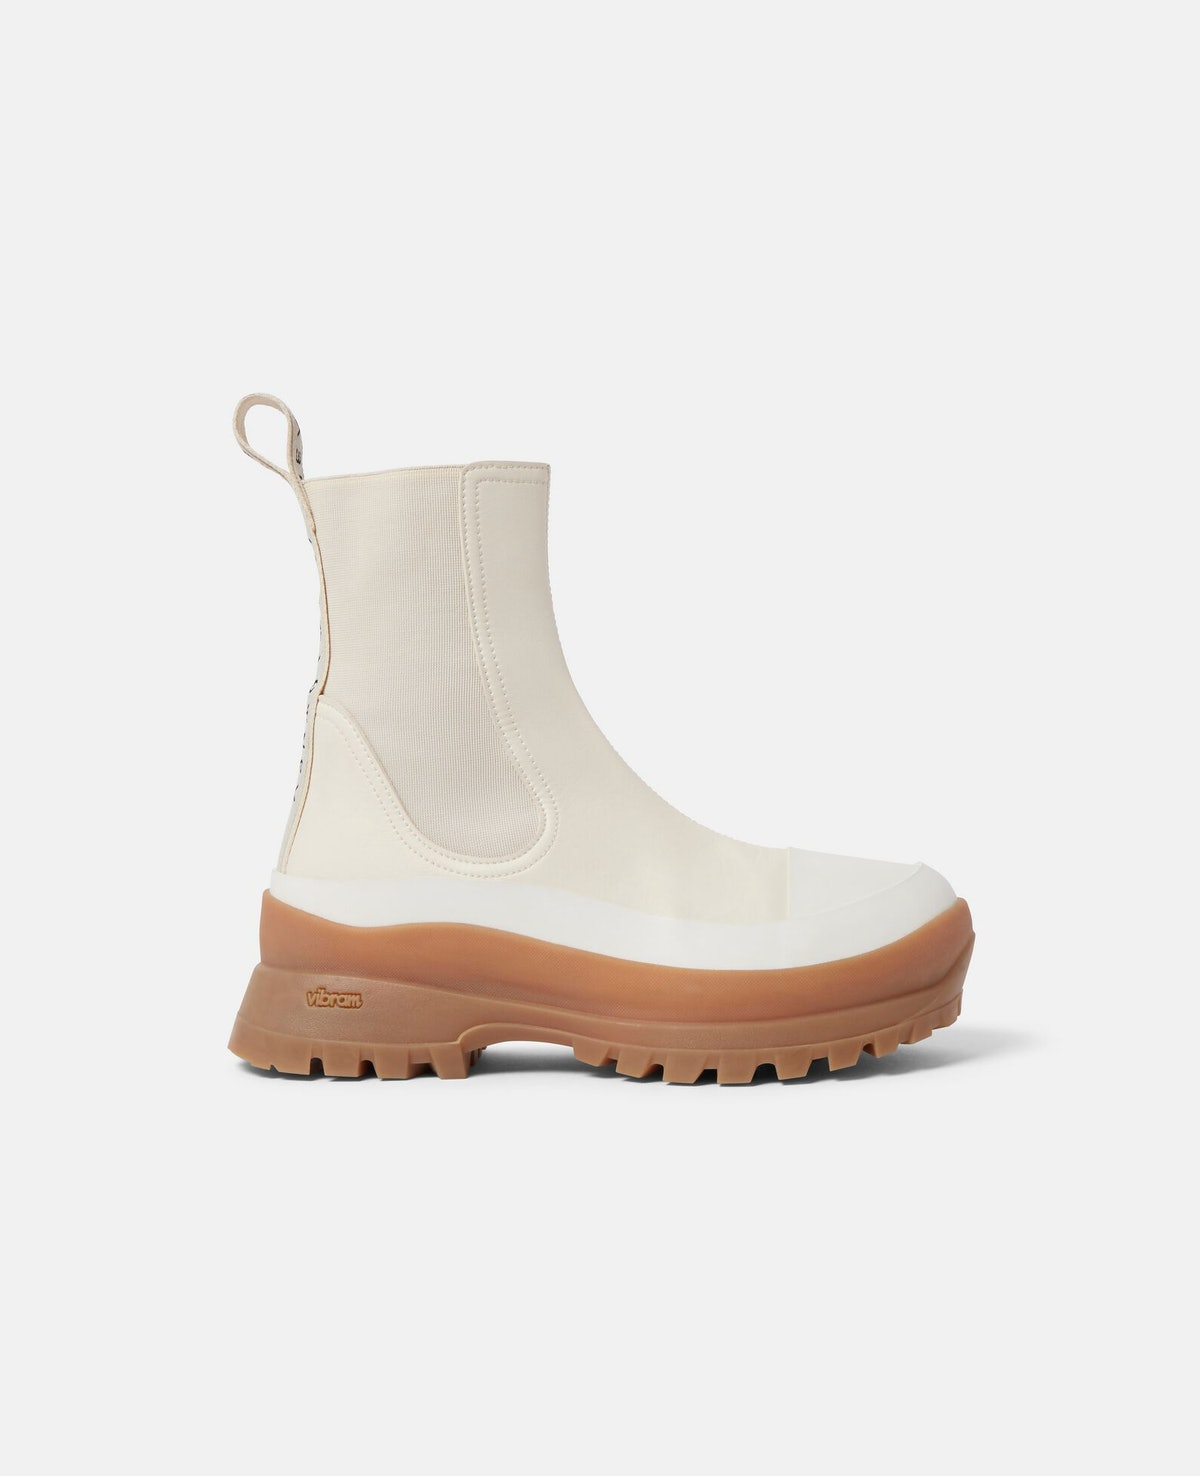 Trace Chelsea Boots in Cream from Stella McCartney.